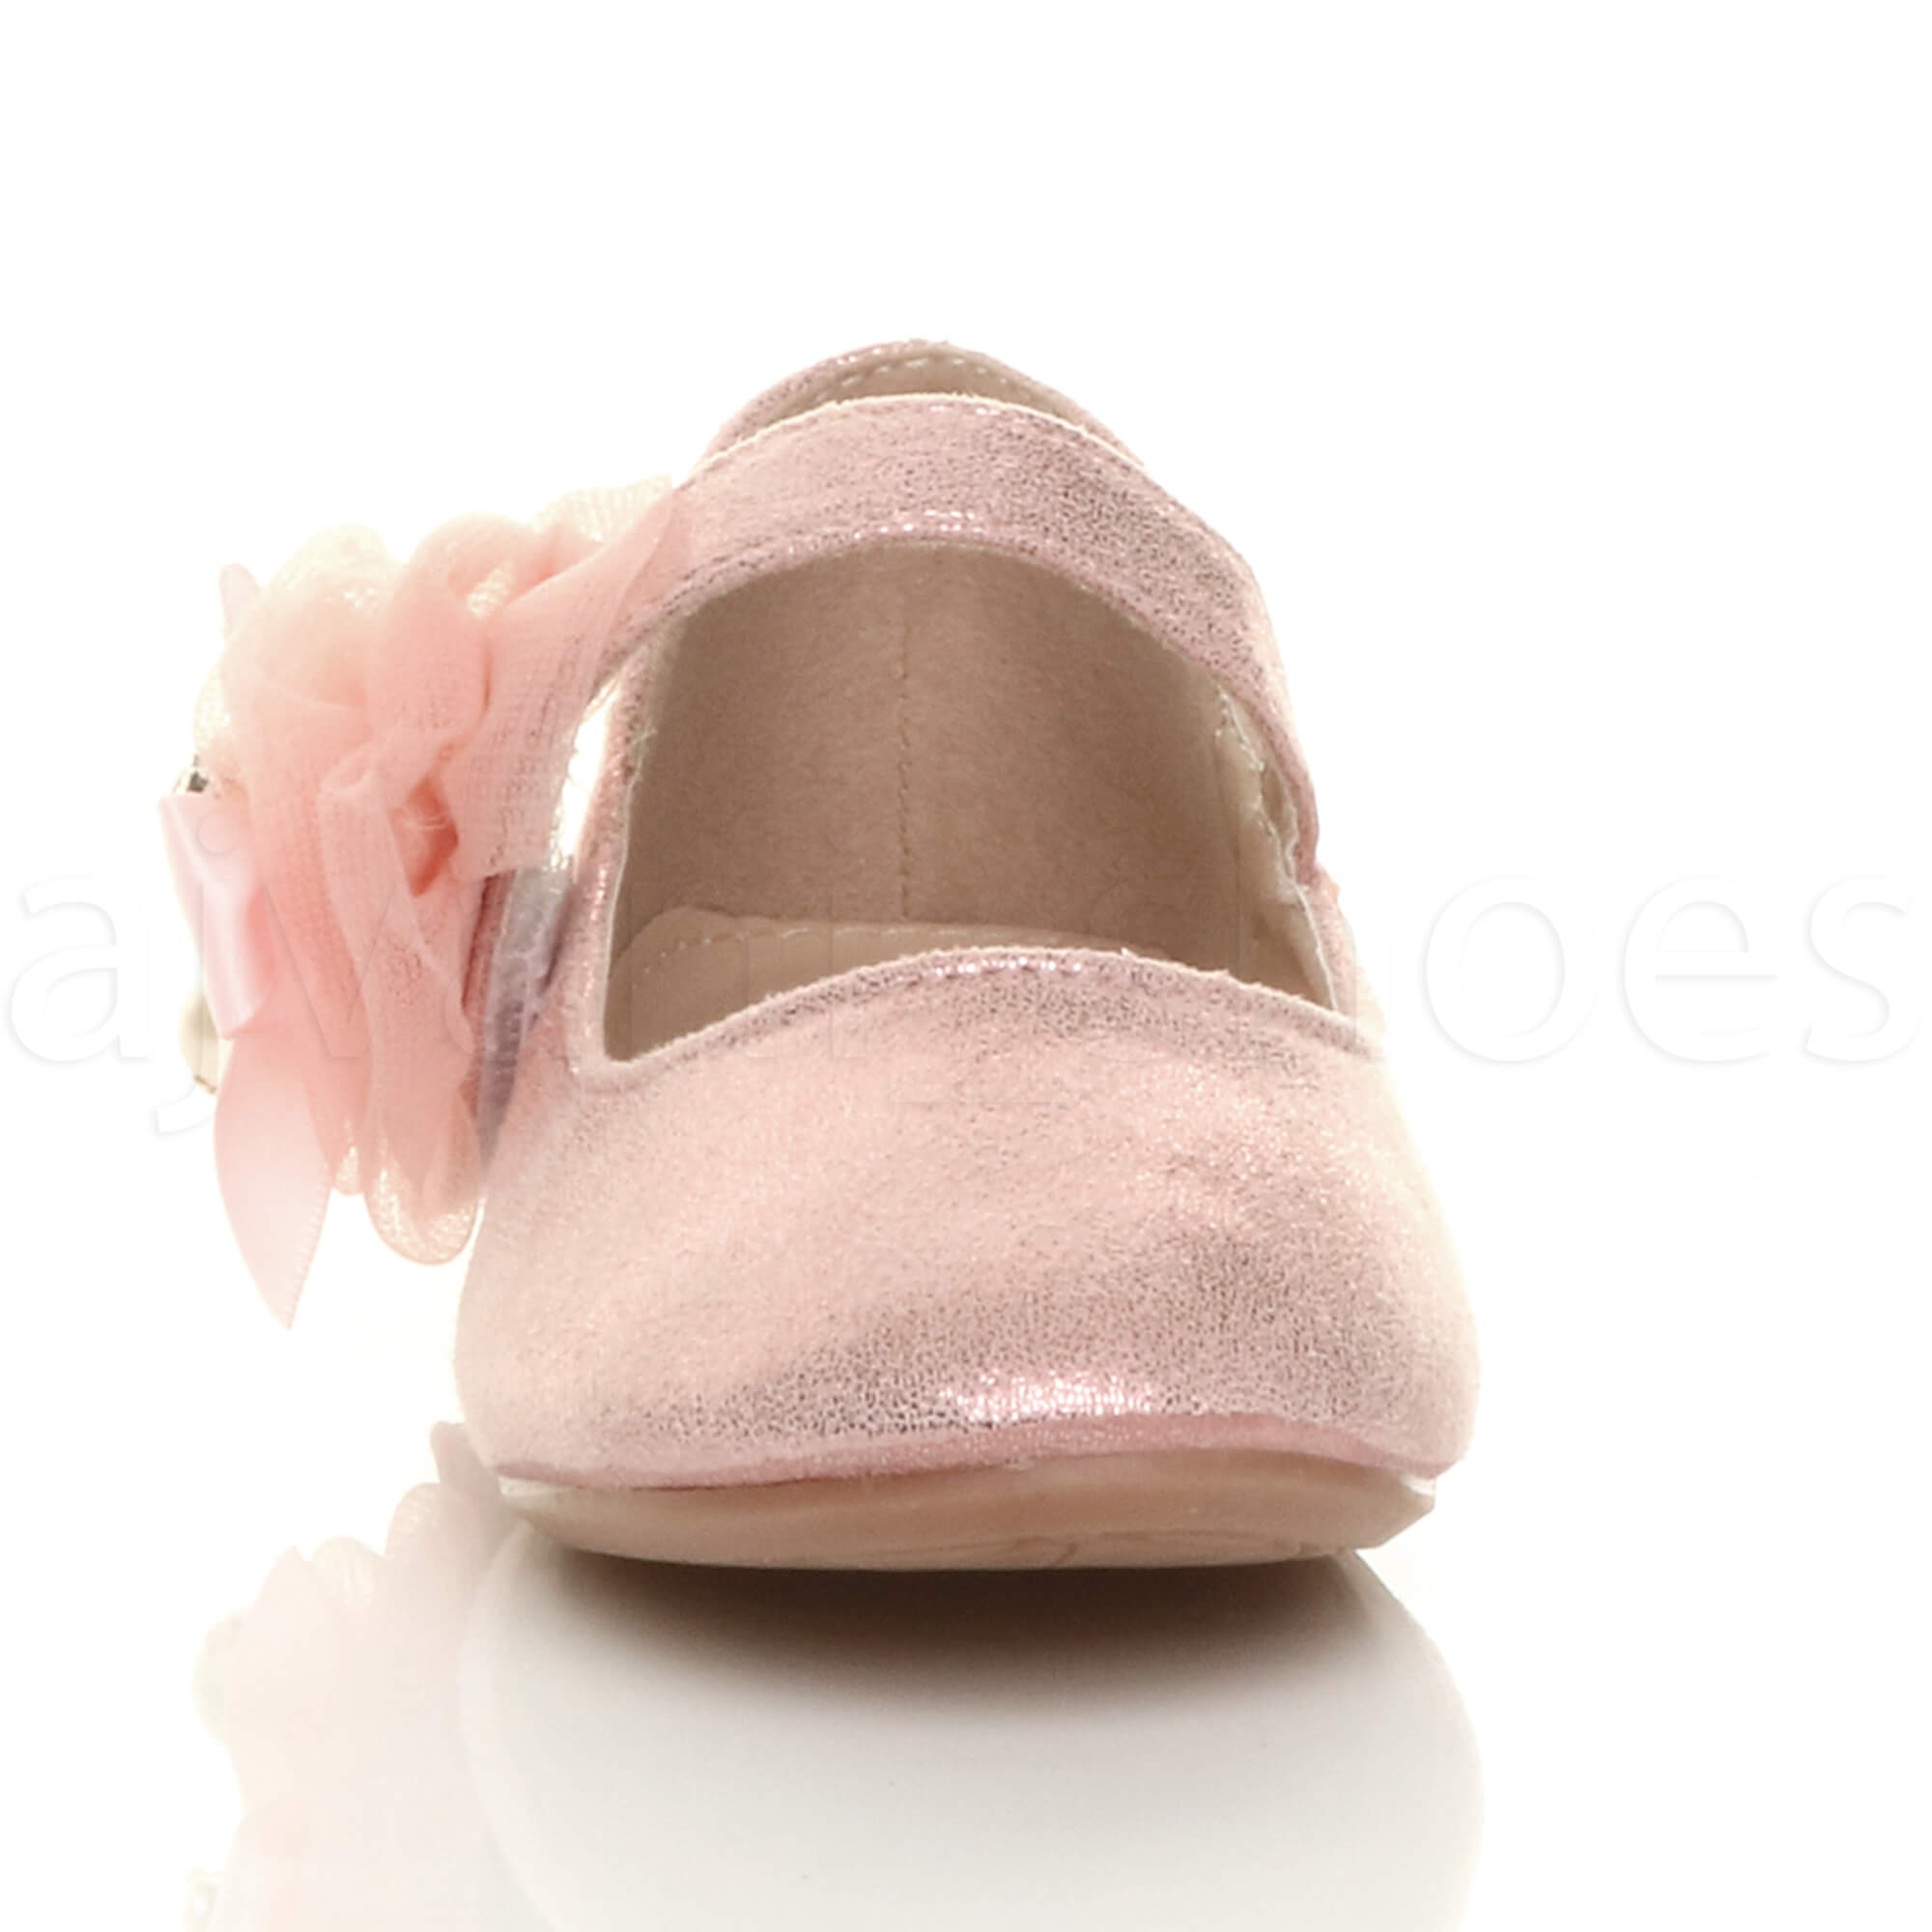 GIRLS-KIDS-CHILDRENS-FLAT-MARY-JANE-WEDDING-BRIDESMAID-SHOES-BALLERINAS-SIZE